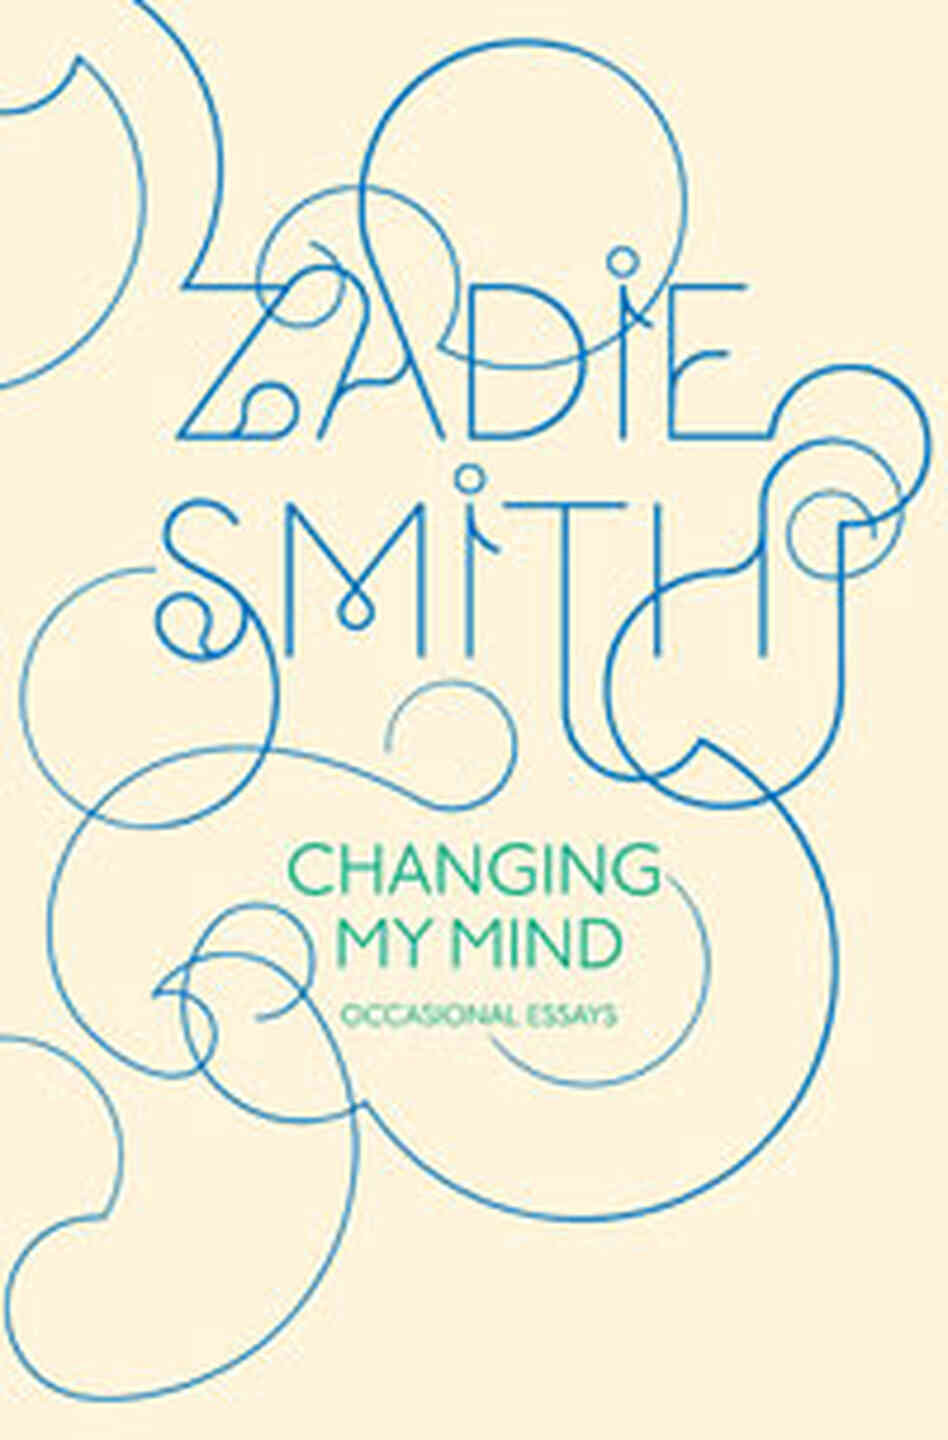 'Changing My Mind: Occasional Essays'